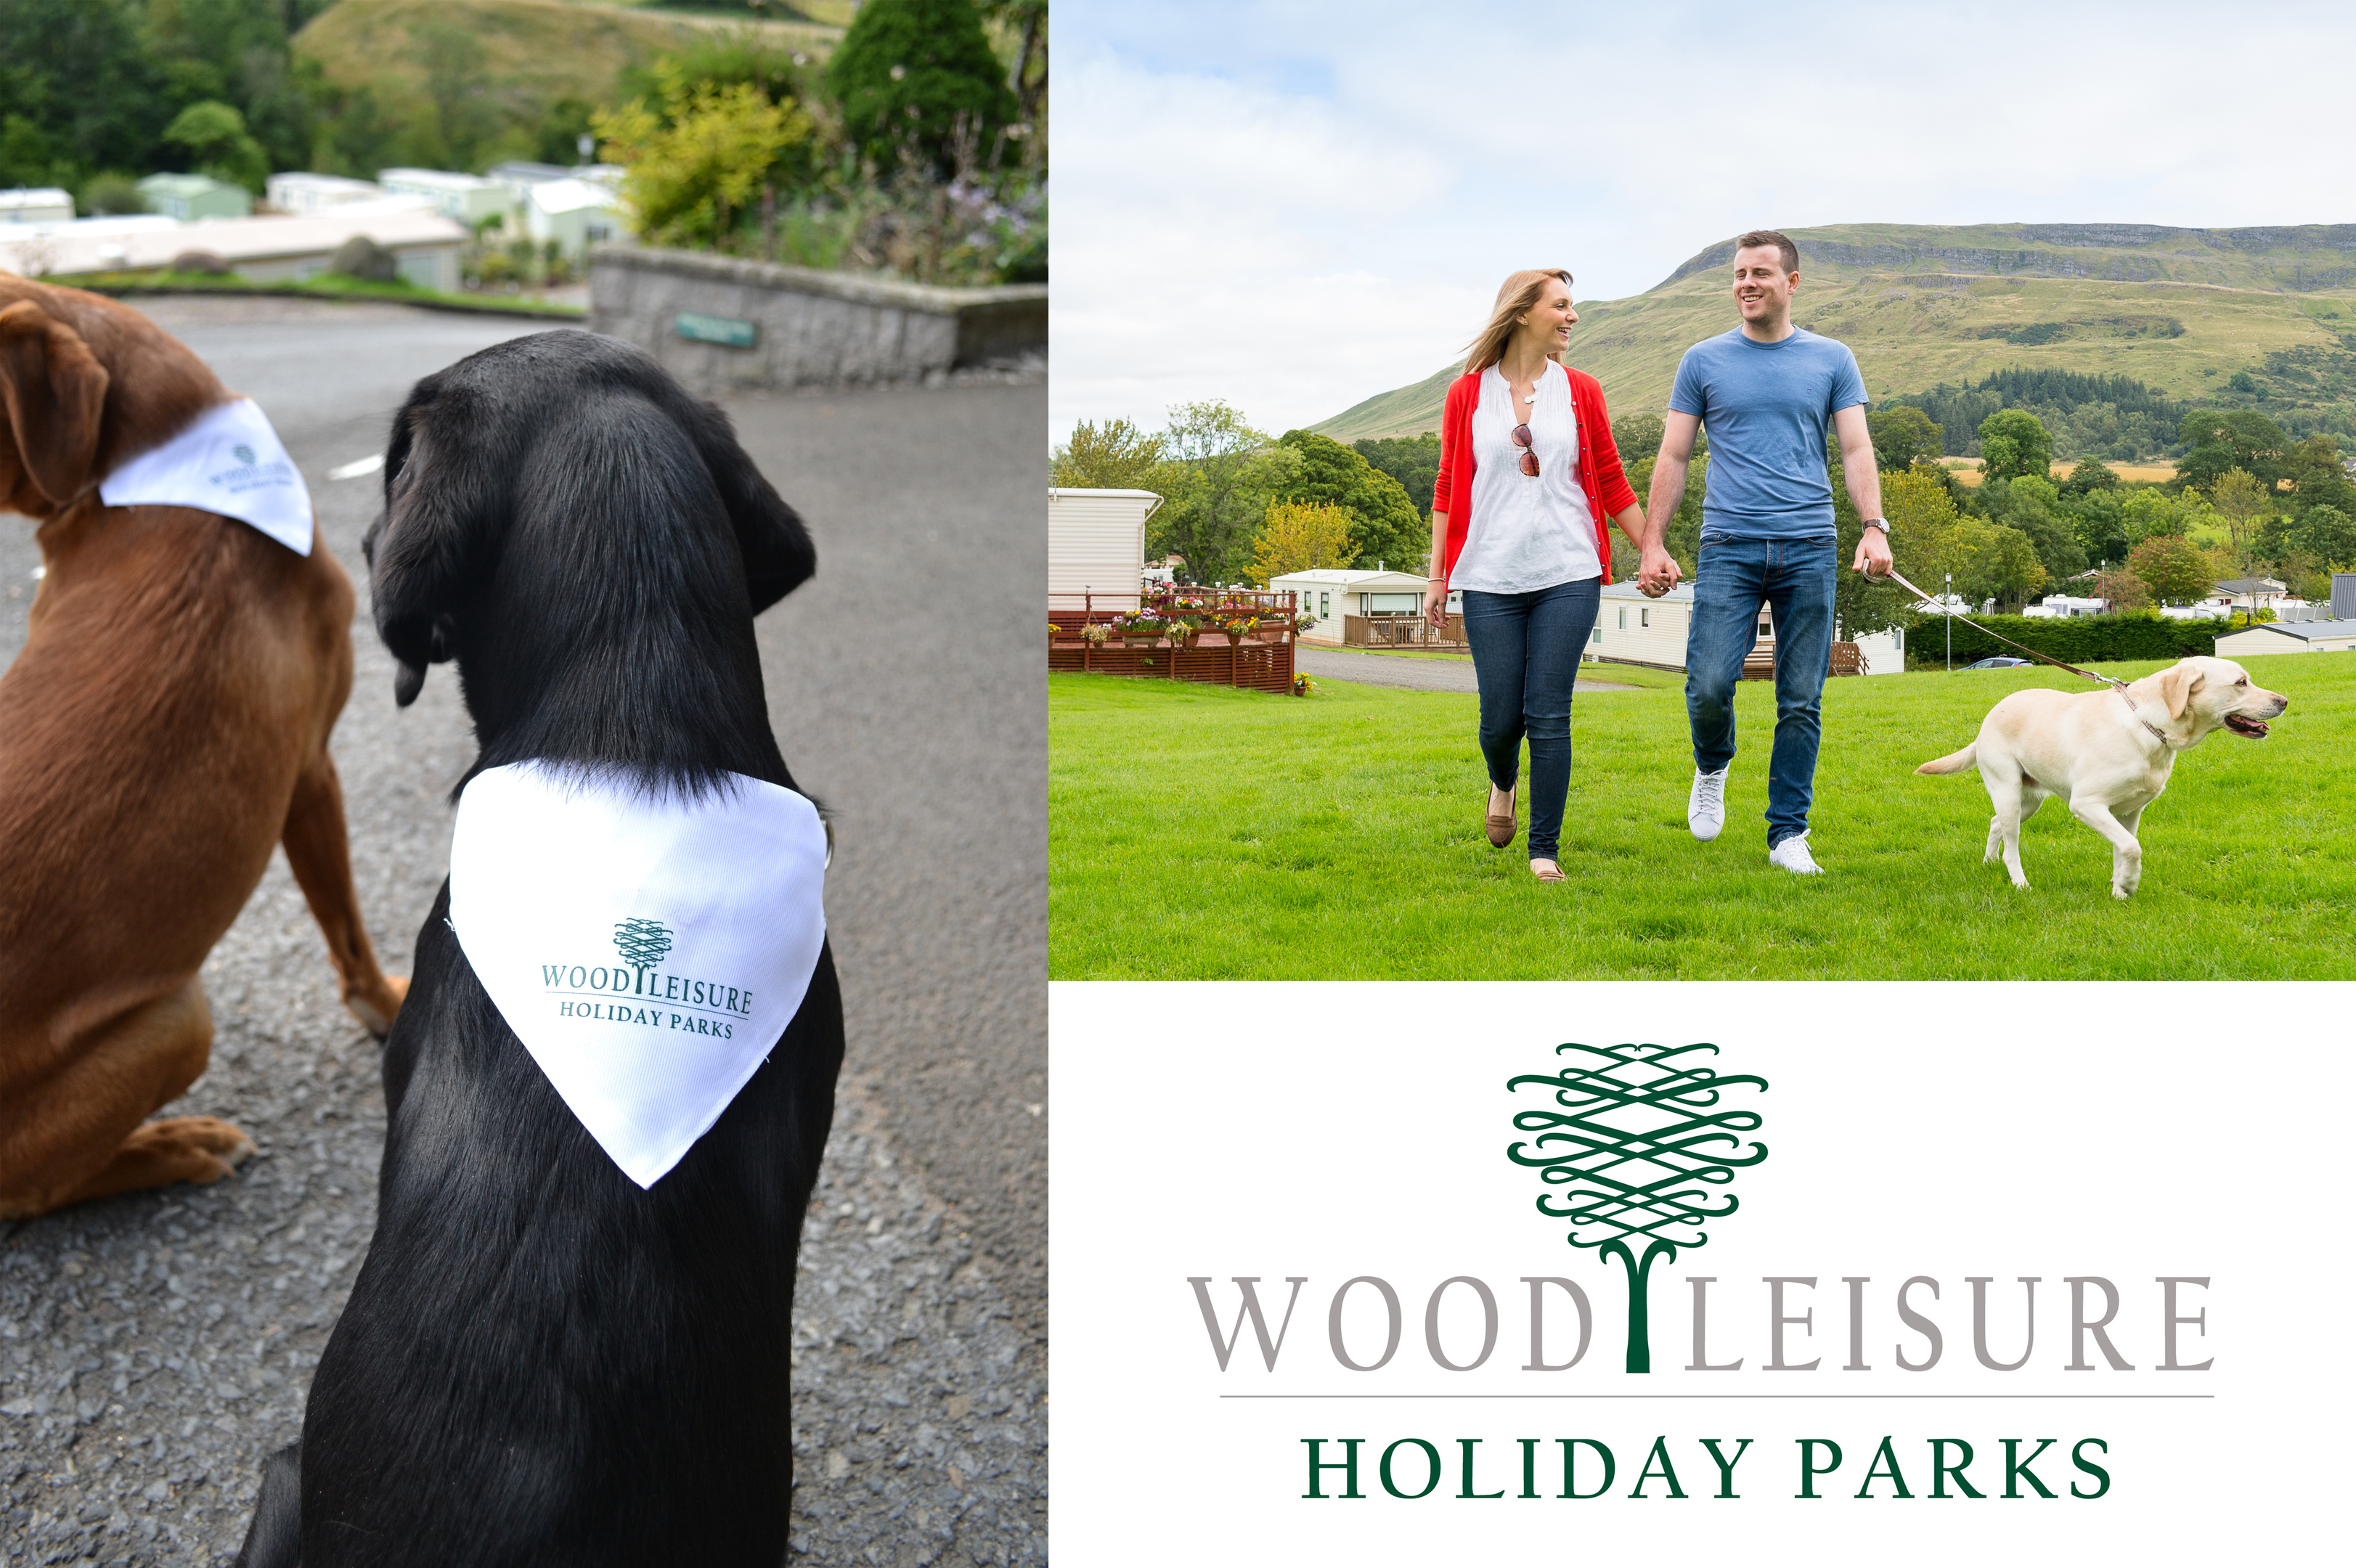 WoodLeisure for P&J